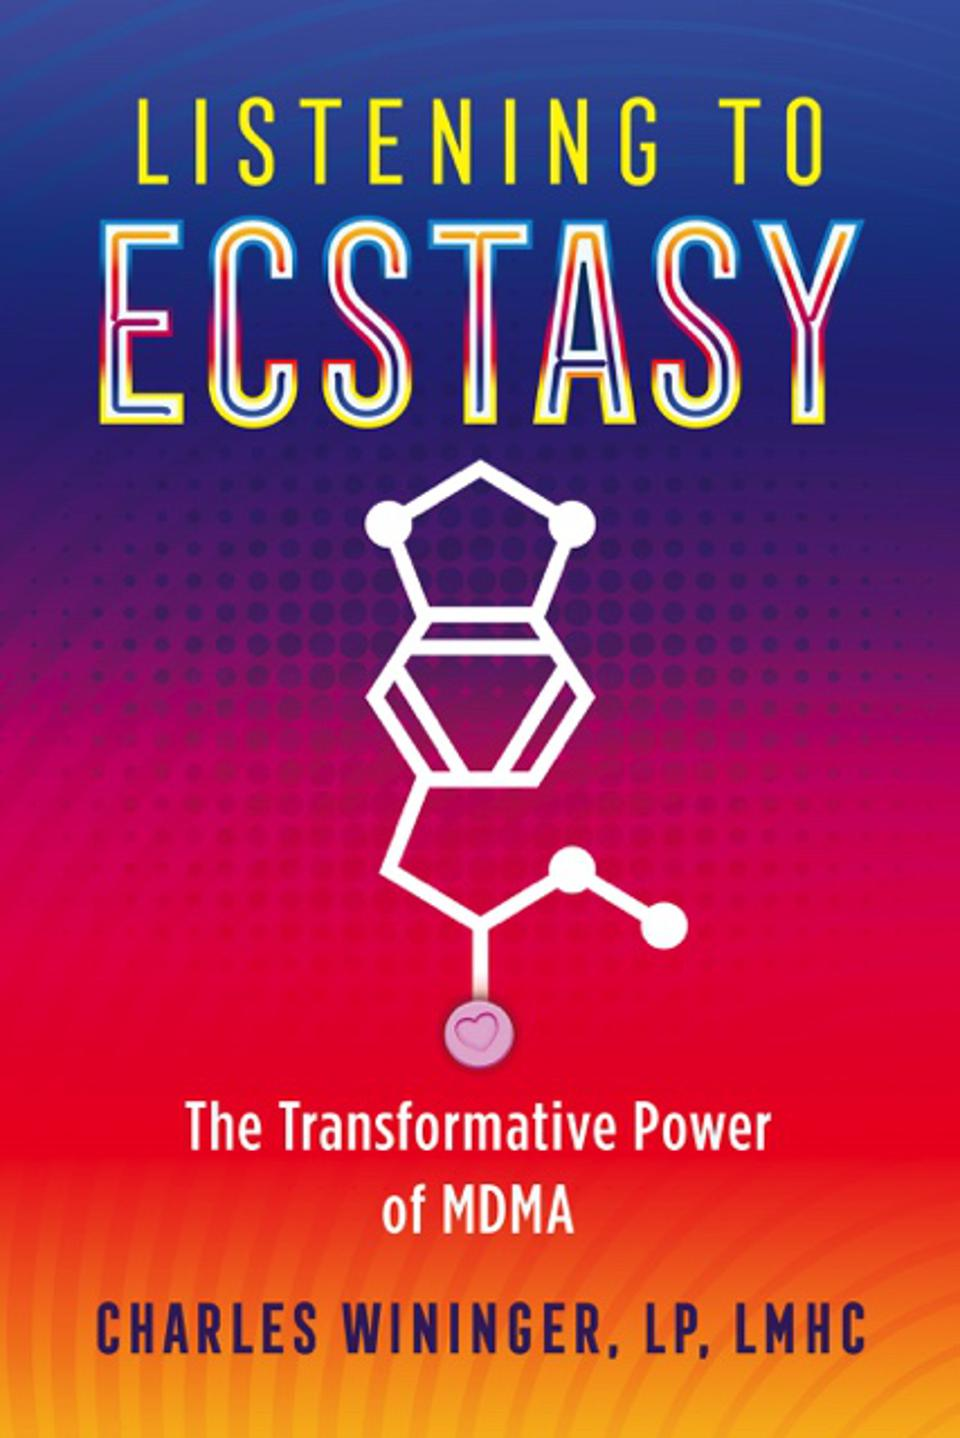 Image of book cover for Listening to Ecstasy